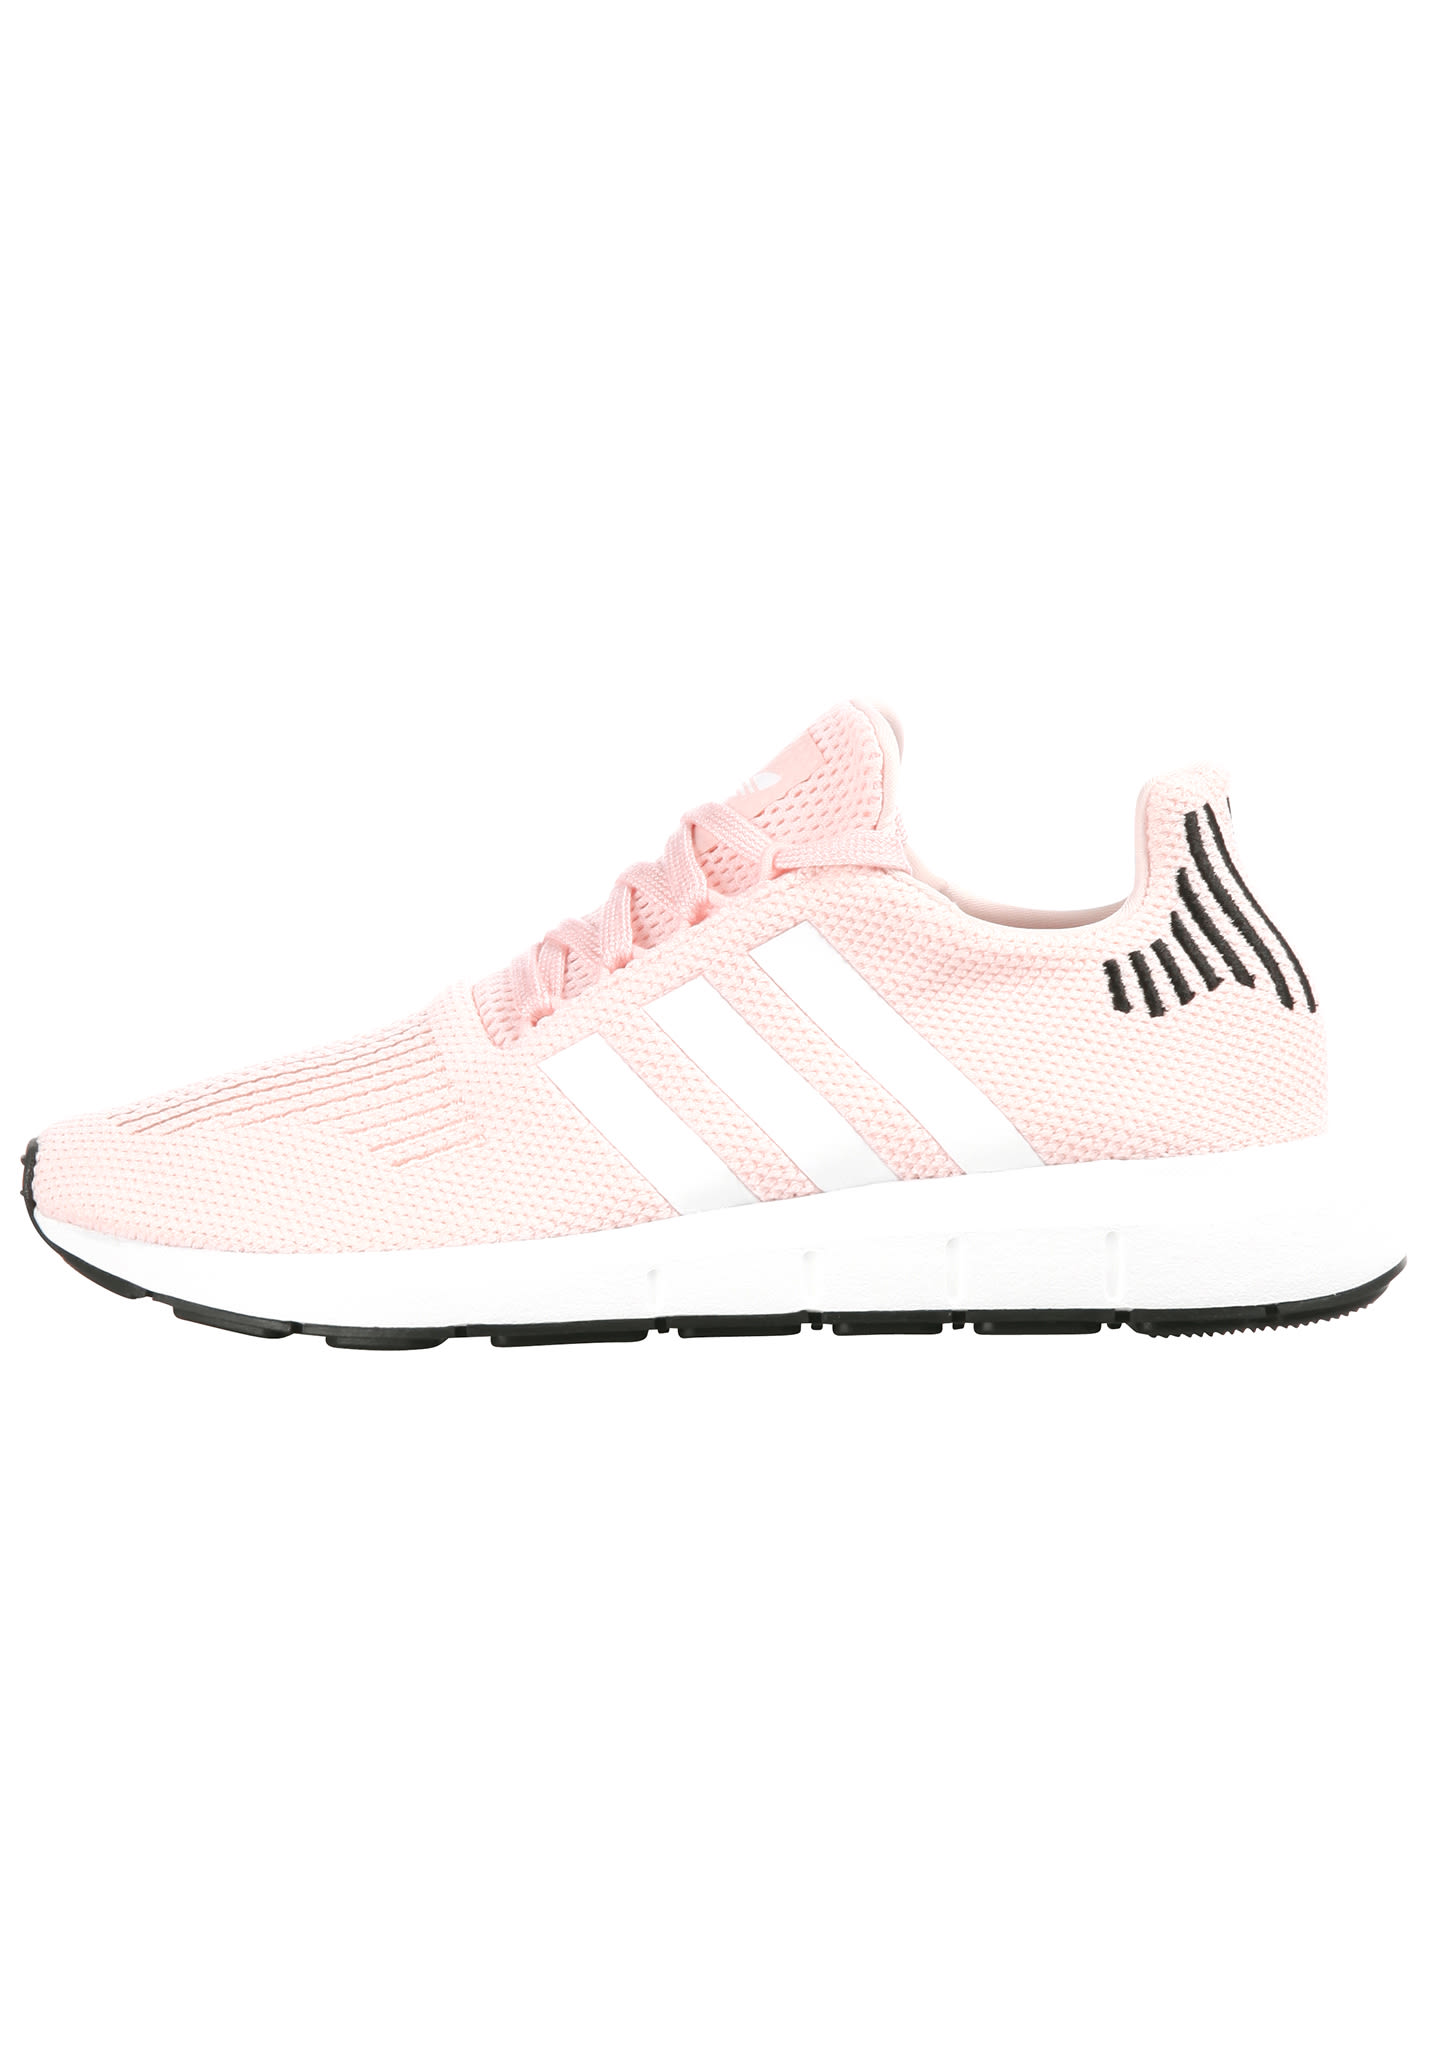 ADIDAS ORIGINALS Swift Run - Sneakers for Women - Pink - Planet Sports 69ac8fa3c4868